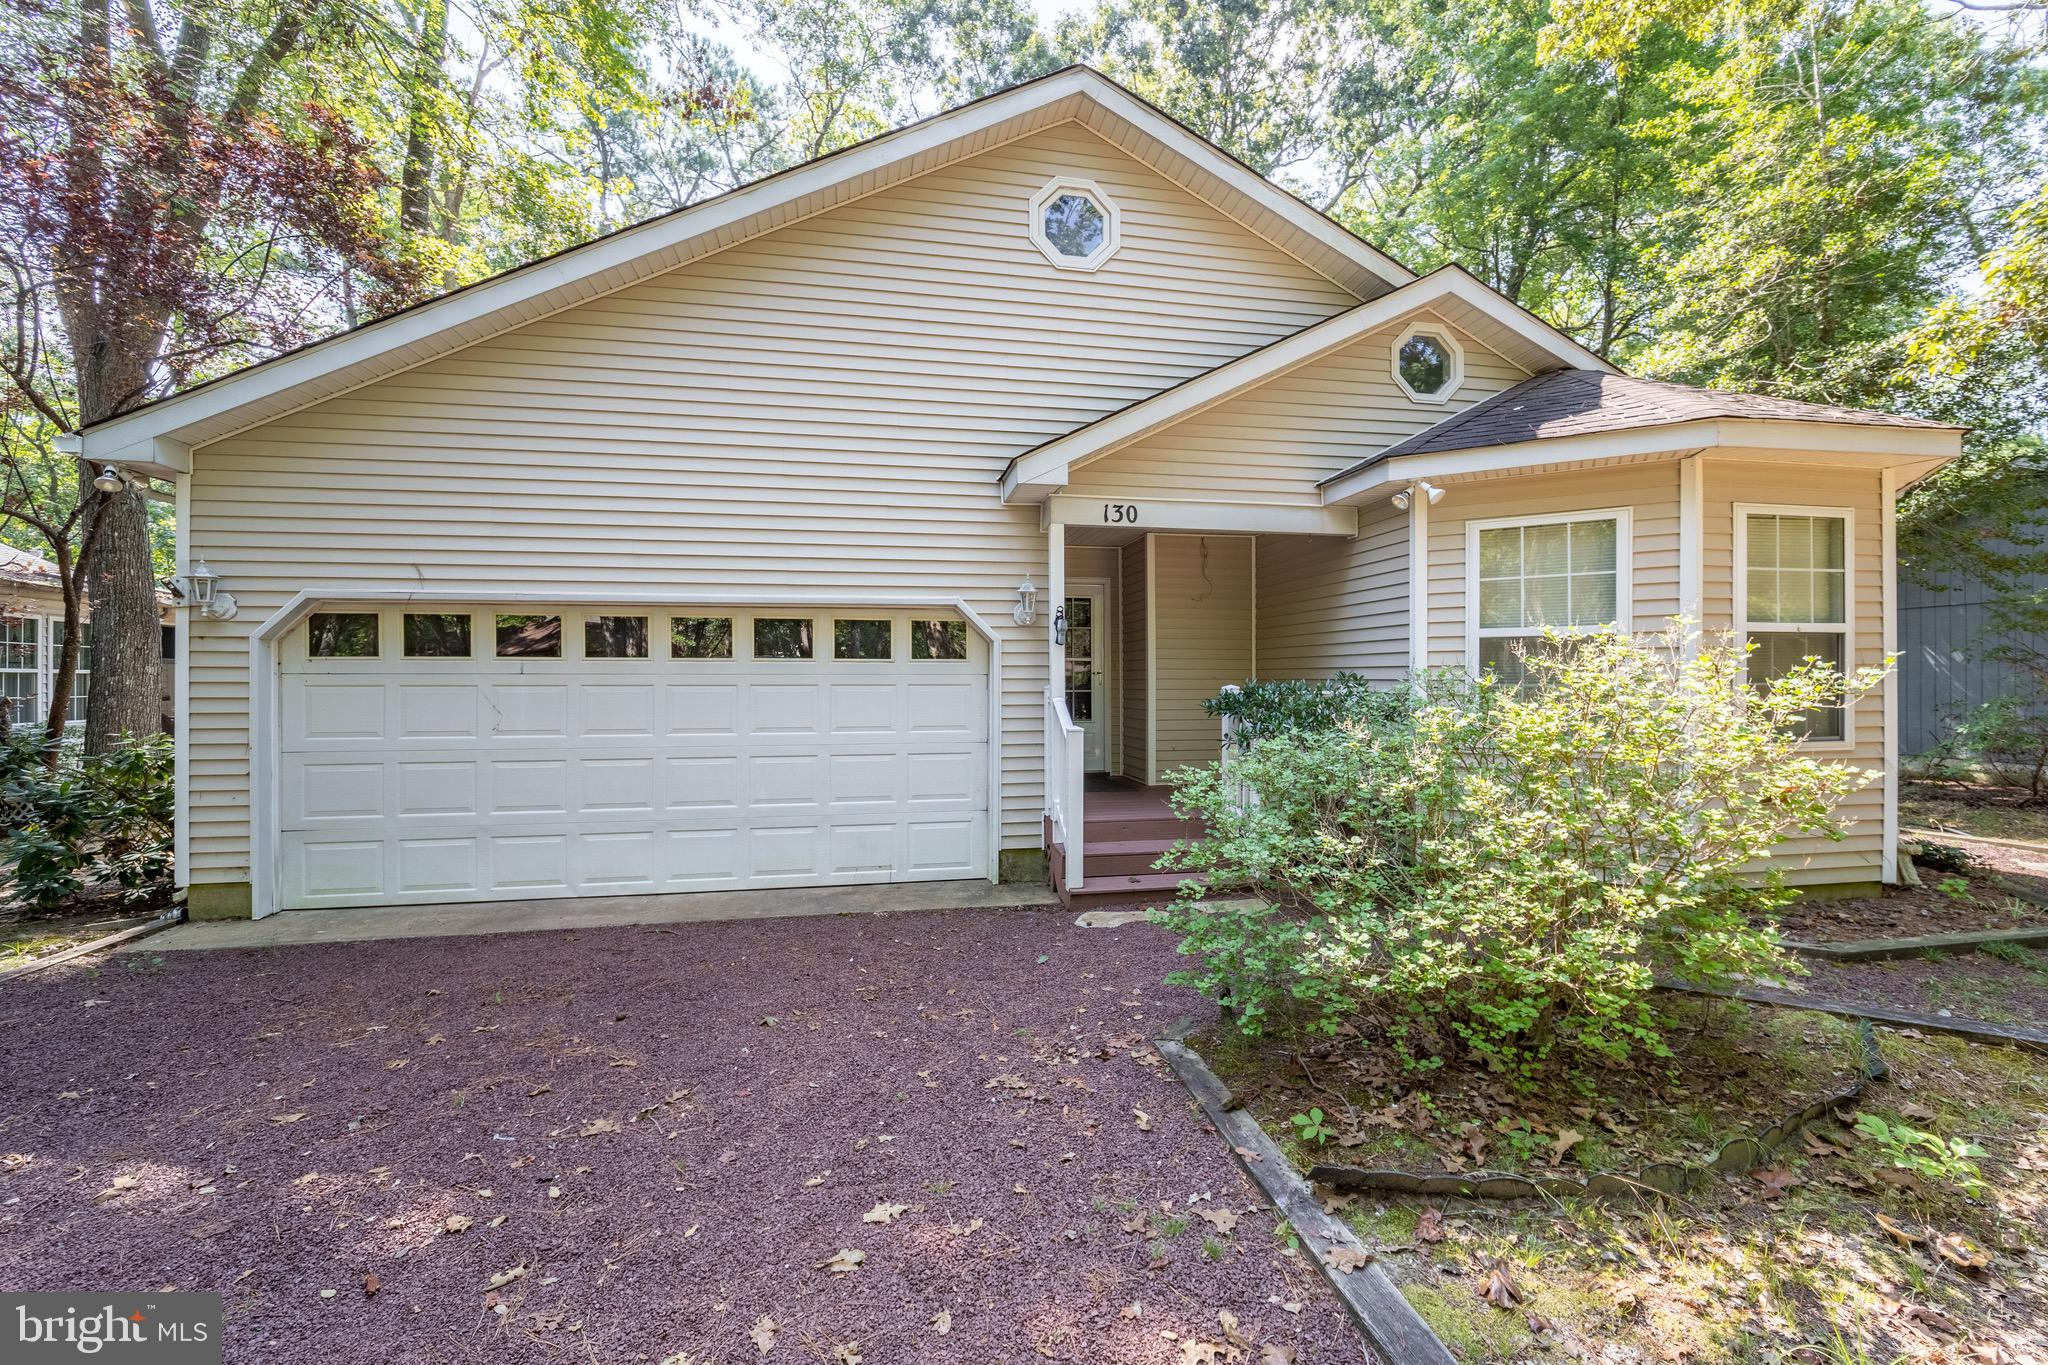 This 3 bedroom 2 bath home is the perfect start to home ownership as this home has a 2 car garage that is highly desirable in the pines.  Ocean Pines is full of amenities including 5 pools, parks, tennis, racket ball, pickle ball court and private ocean front beach club and more.